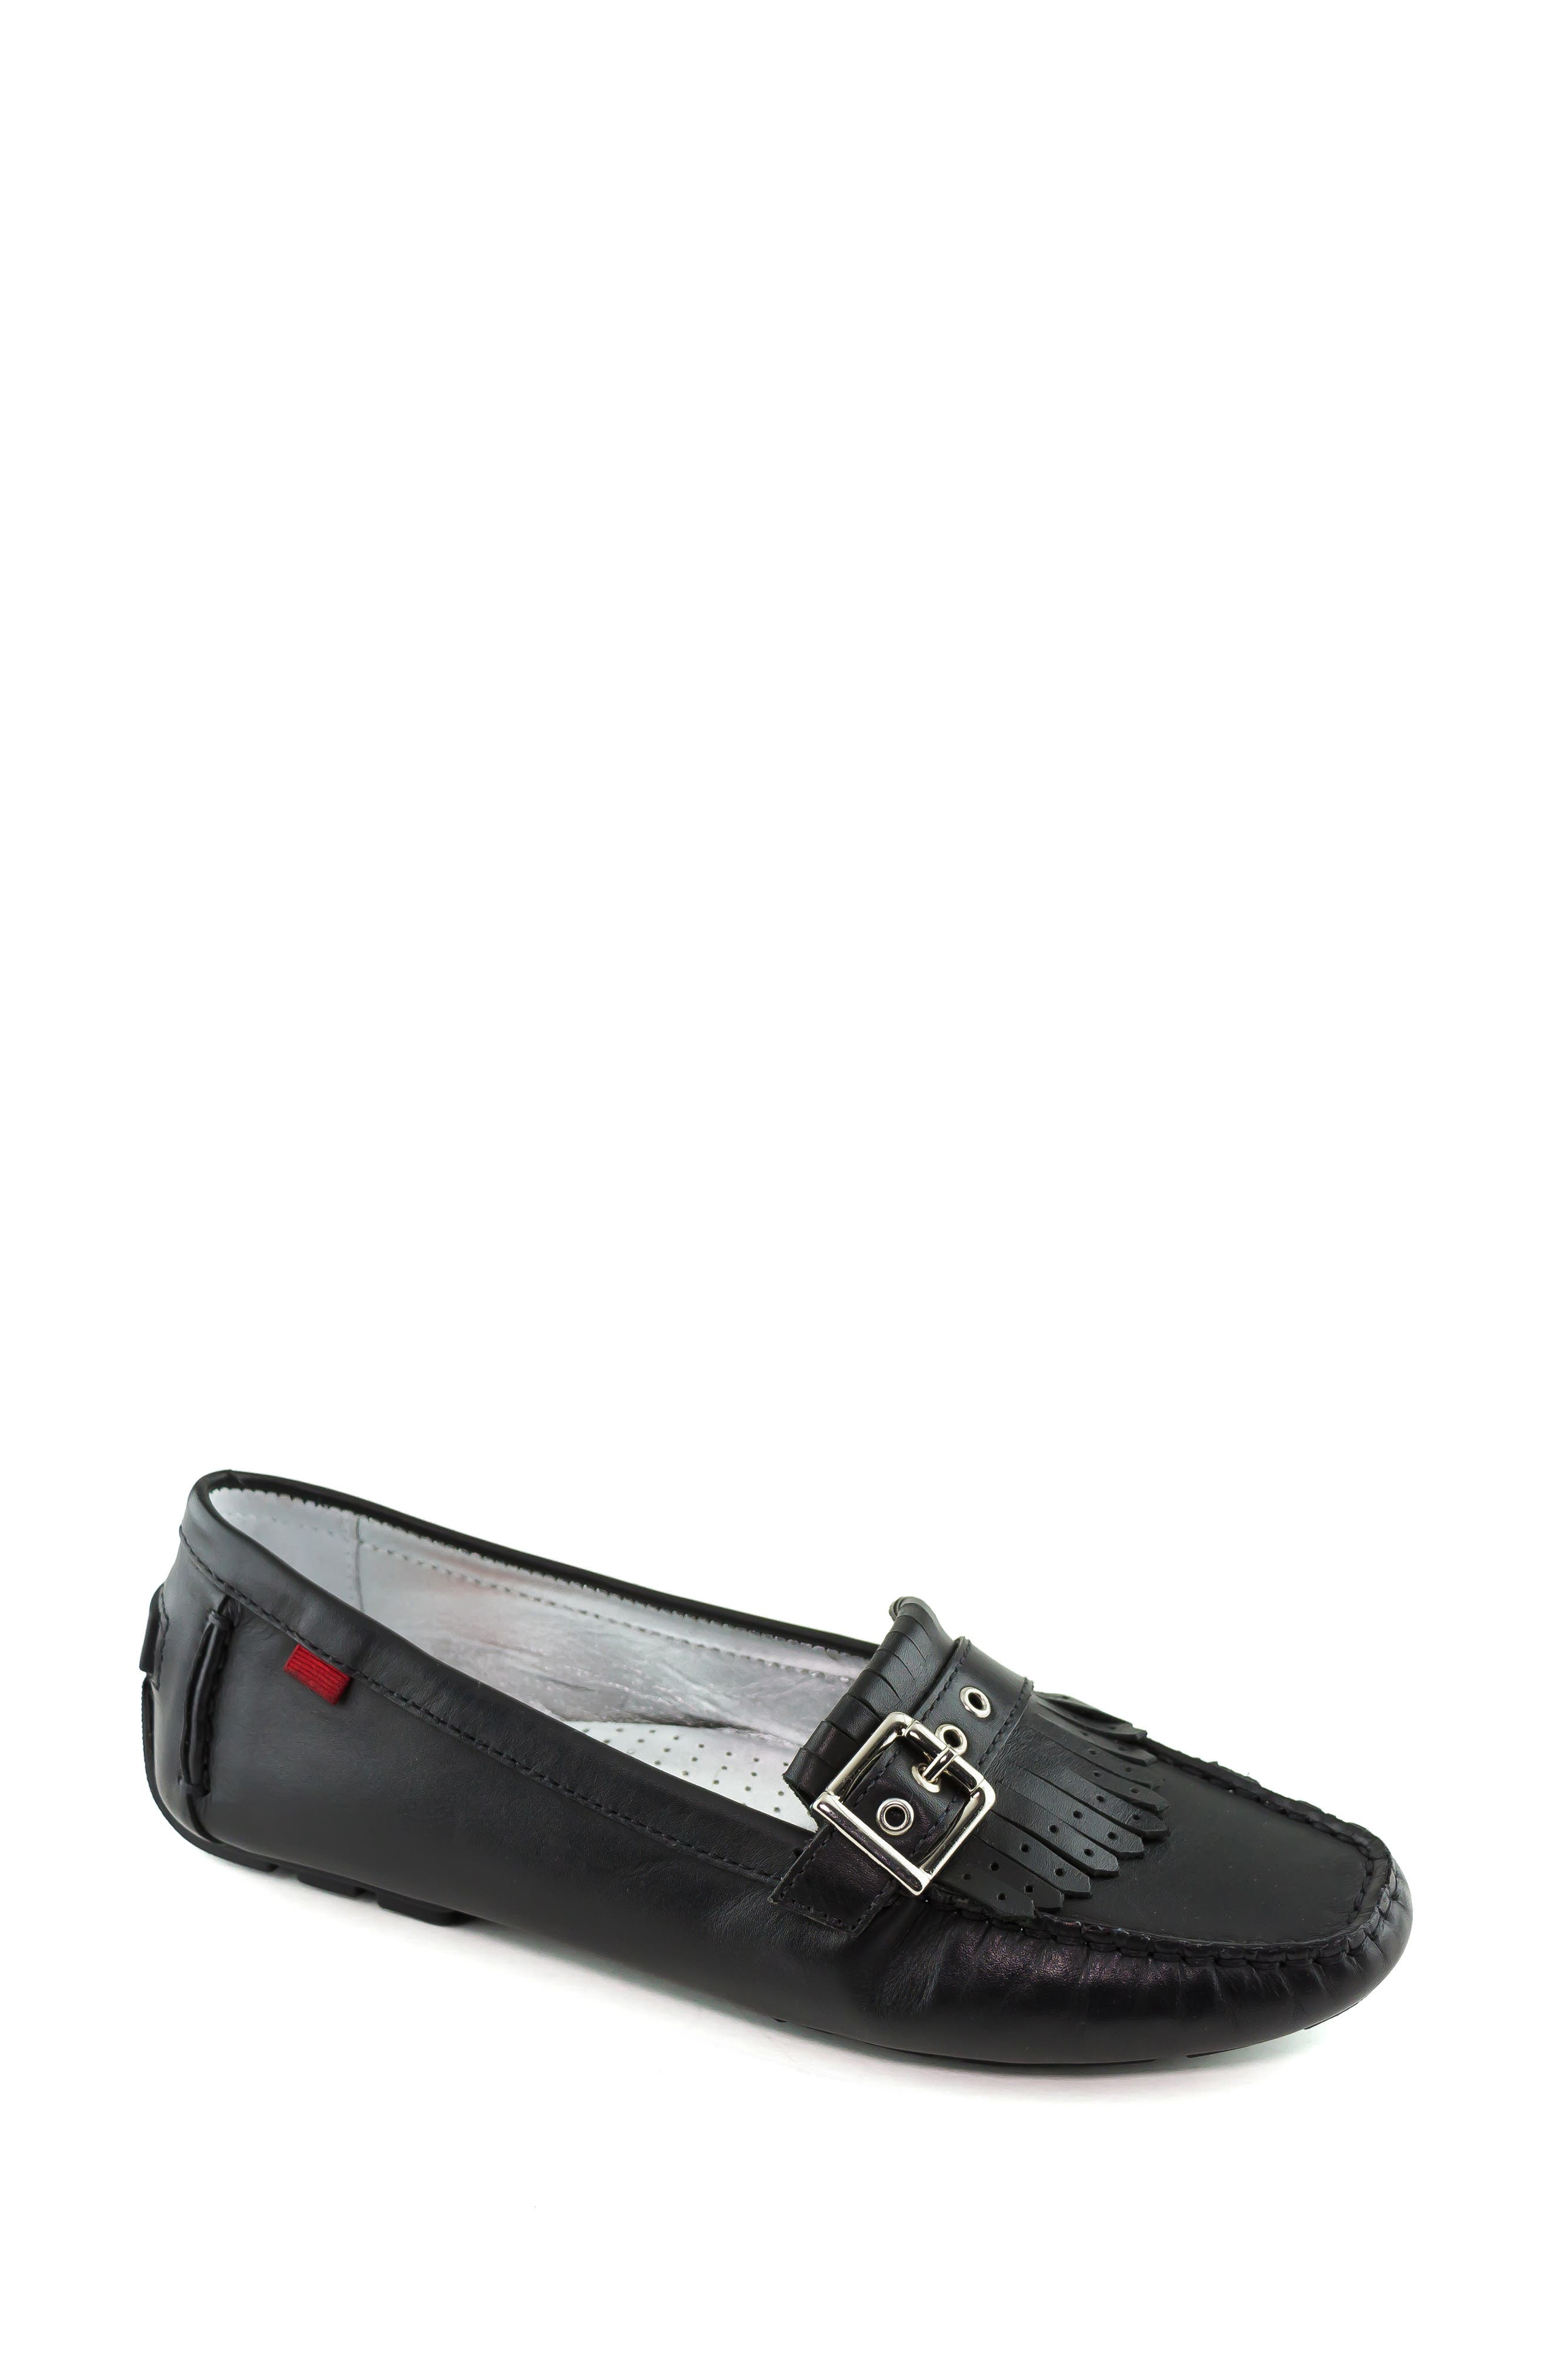 MARC JOSEPH NEW YORK, South Street Loafer, Main thumbnail 1, color, BLACK LEATHER